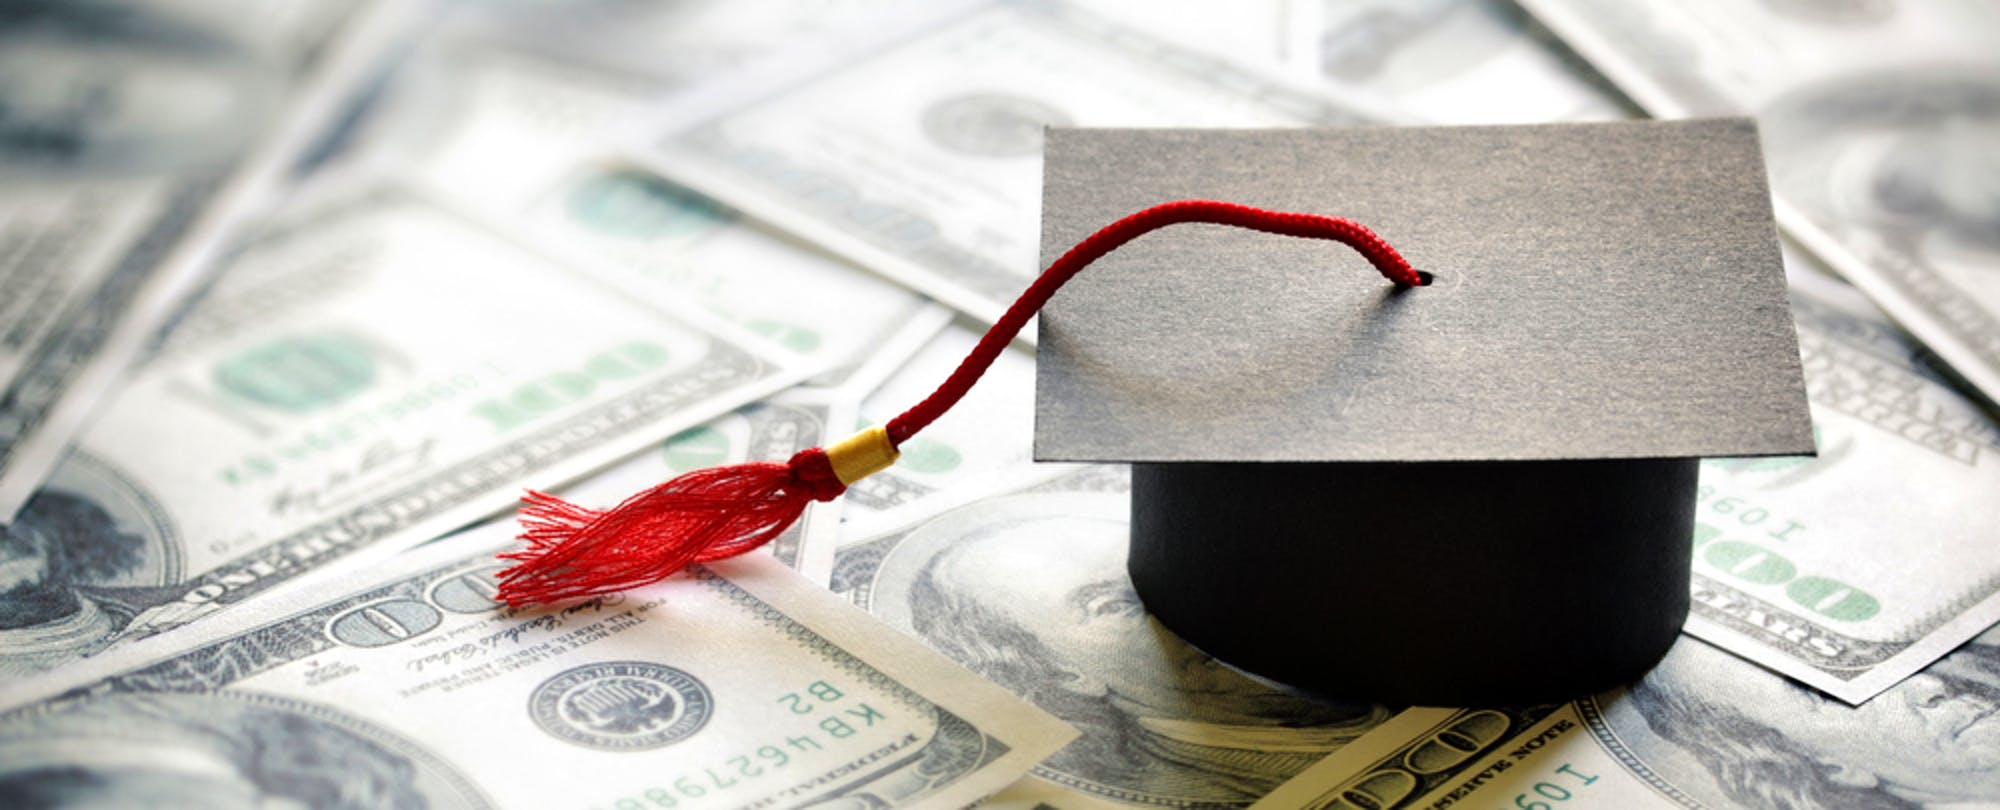 Here's a $5M Seed Fund to Support Higher-Ed Innovations Besides MOOCs